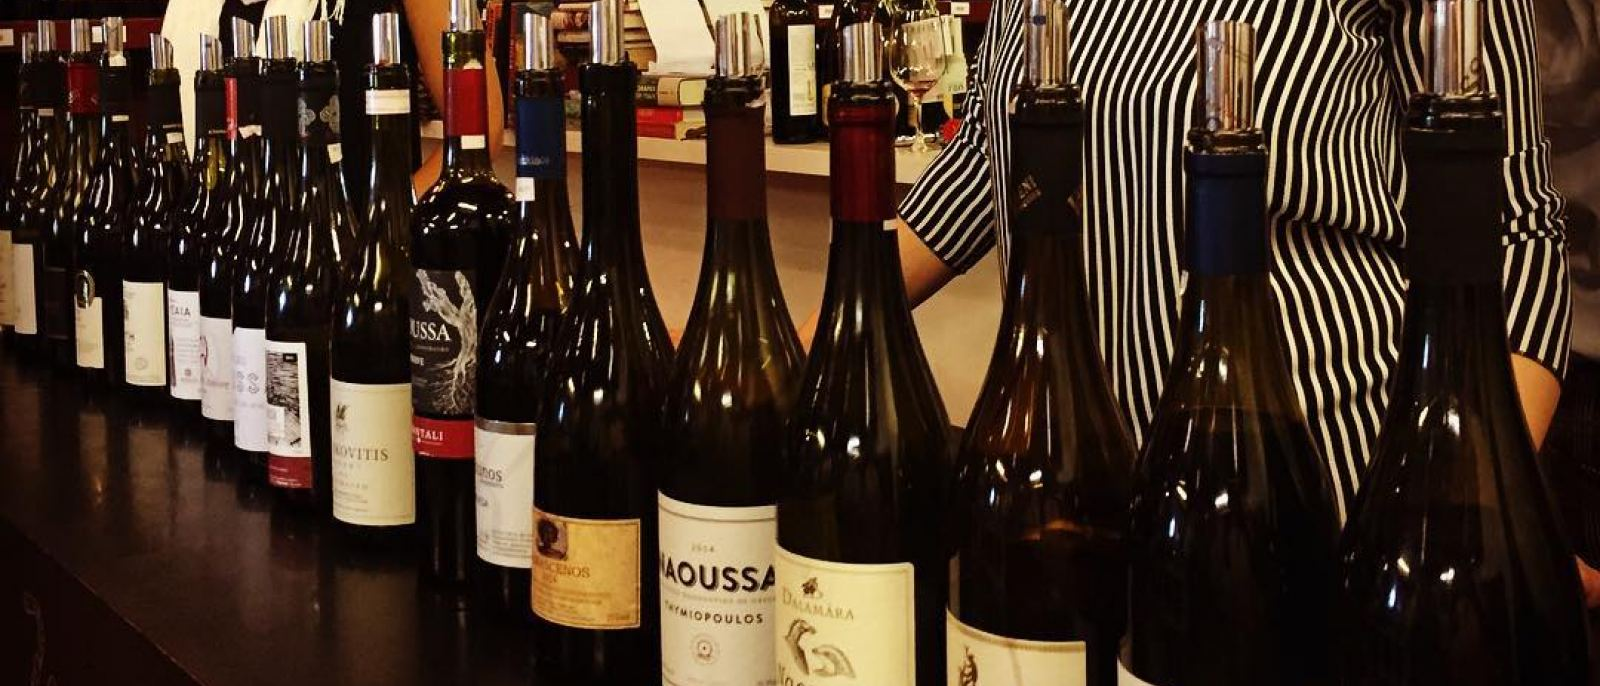 Naoussa wine tasting at Lou Wine Shop in Los Feliz